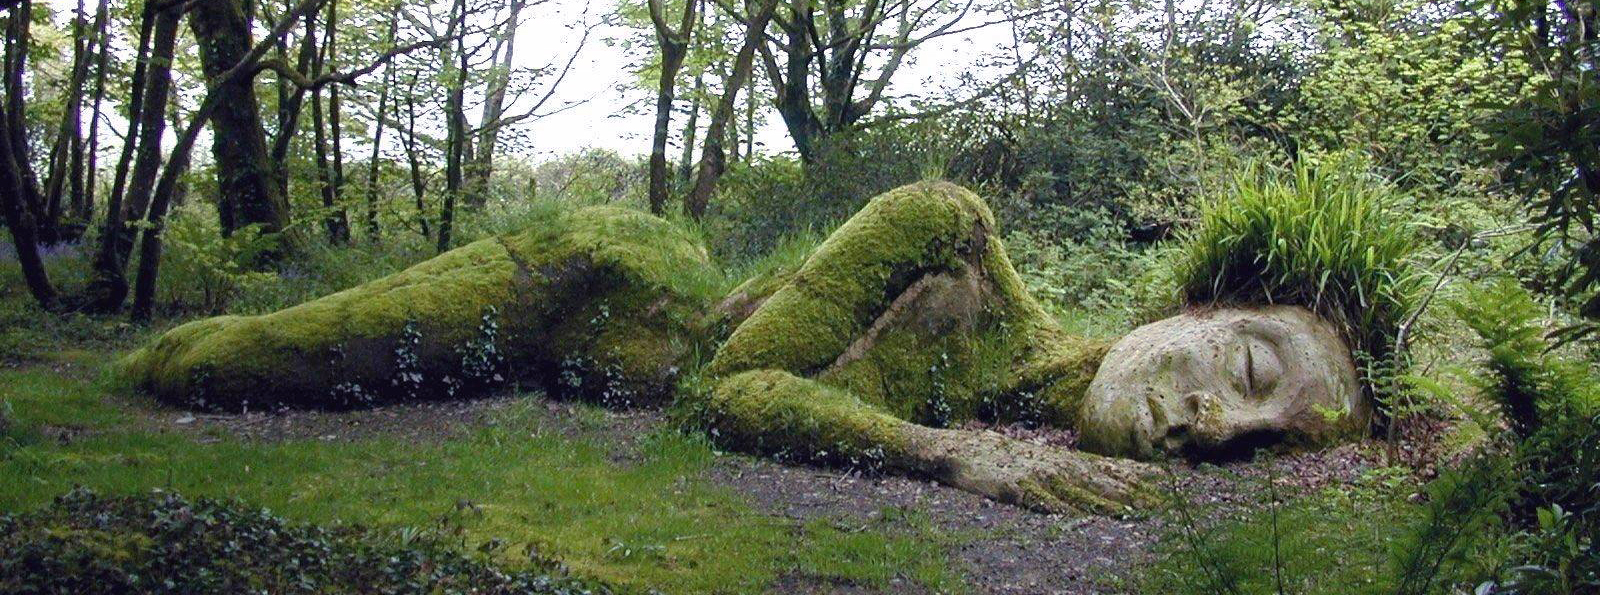 sleeping-goddess-at-the-lost-gardens-of-heligan-england-picture1